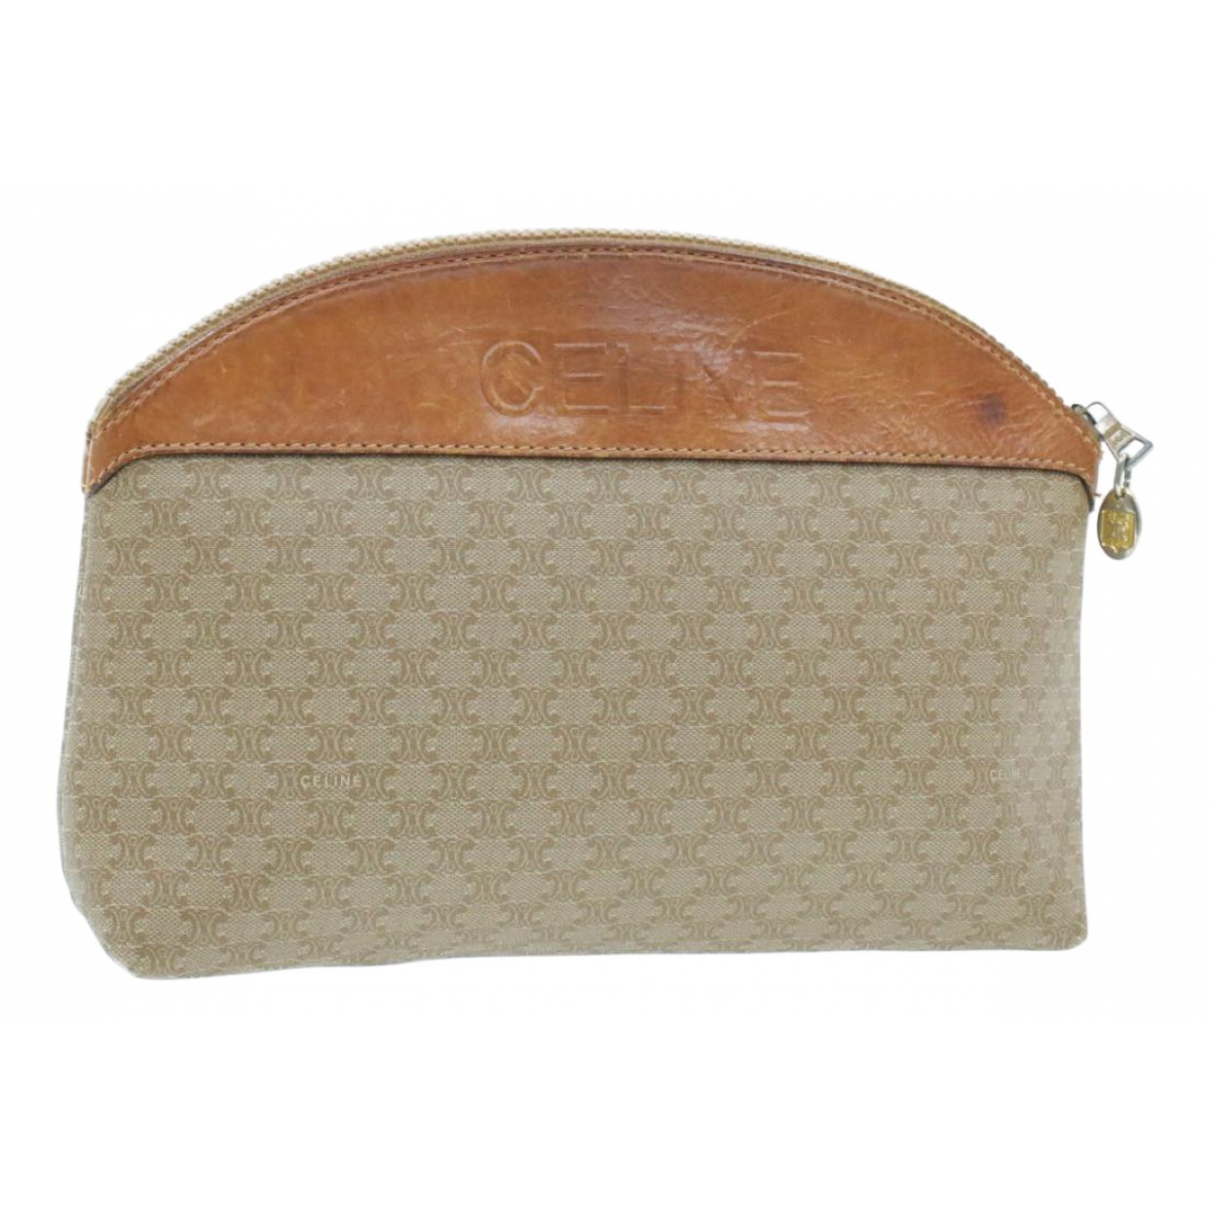 Celine \N Brown Cloth Clutch bag for Women \N